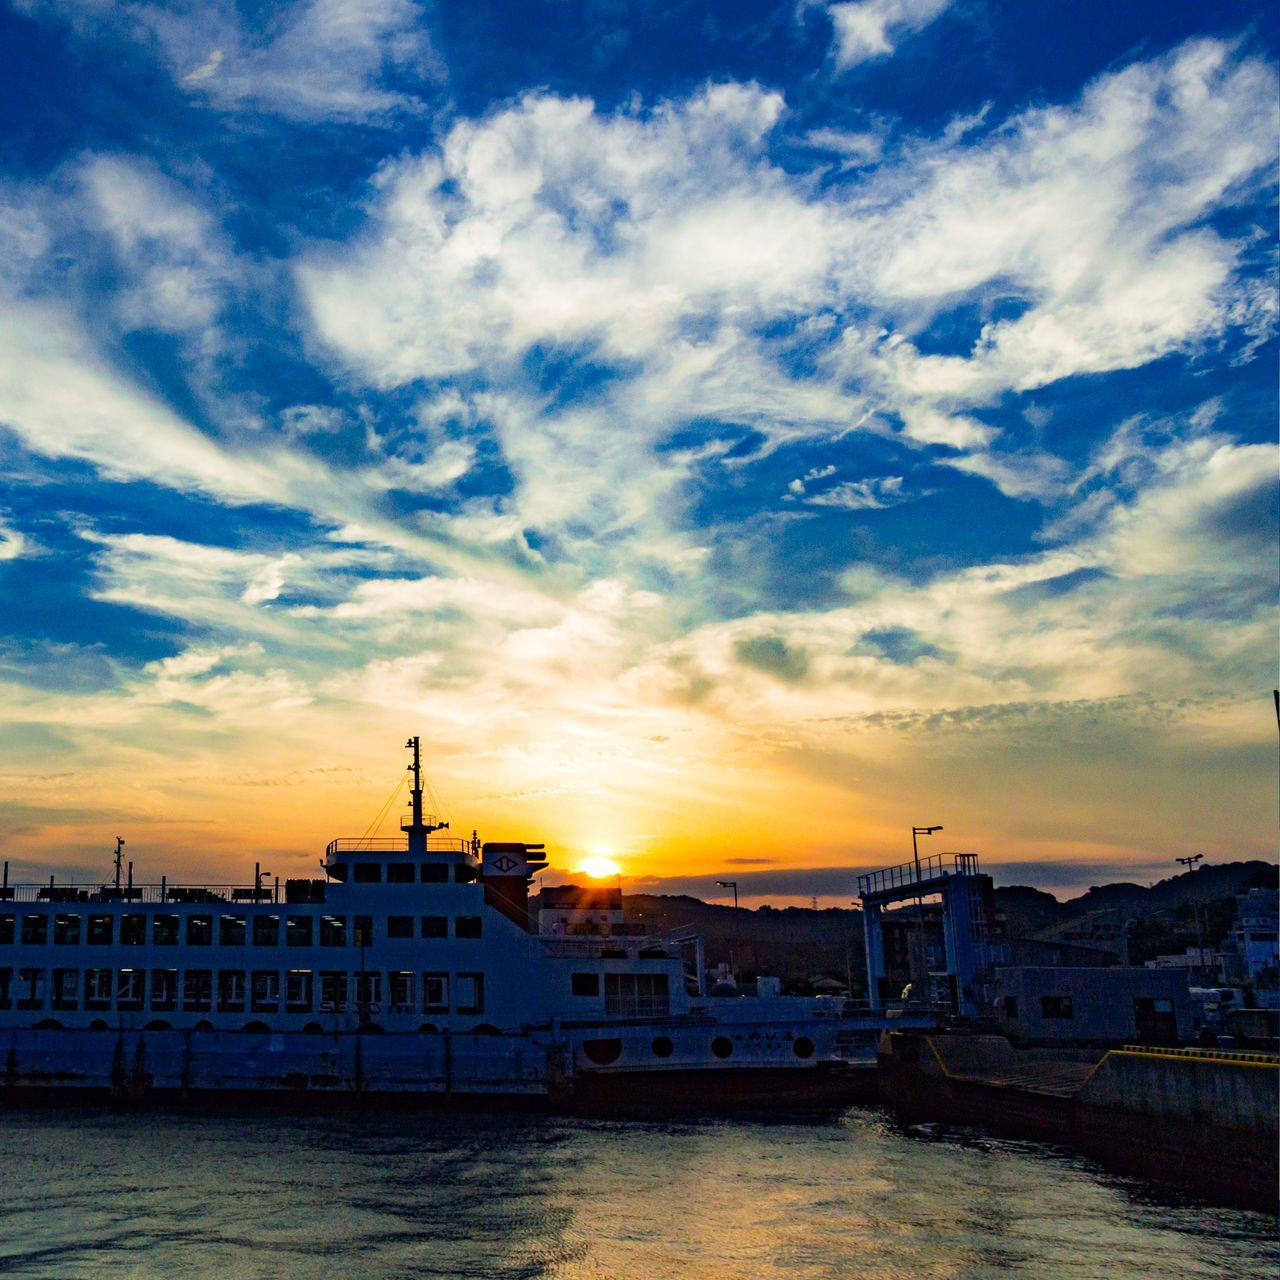 water, building exterior, architecture, sky, cloud - sky, built structure, nautical vessel, sunset, sea, no people, waterfront, outdoors, travel destinations, nature, moored, beauty in nature, harbor, city, cityscape, yacht, day